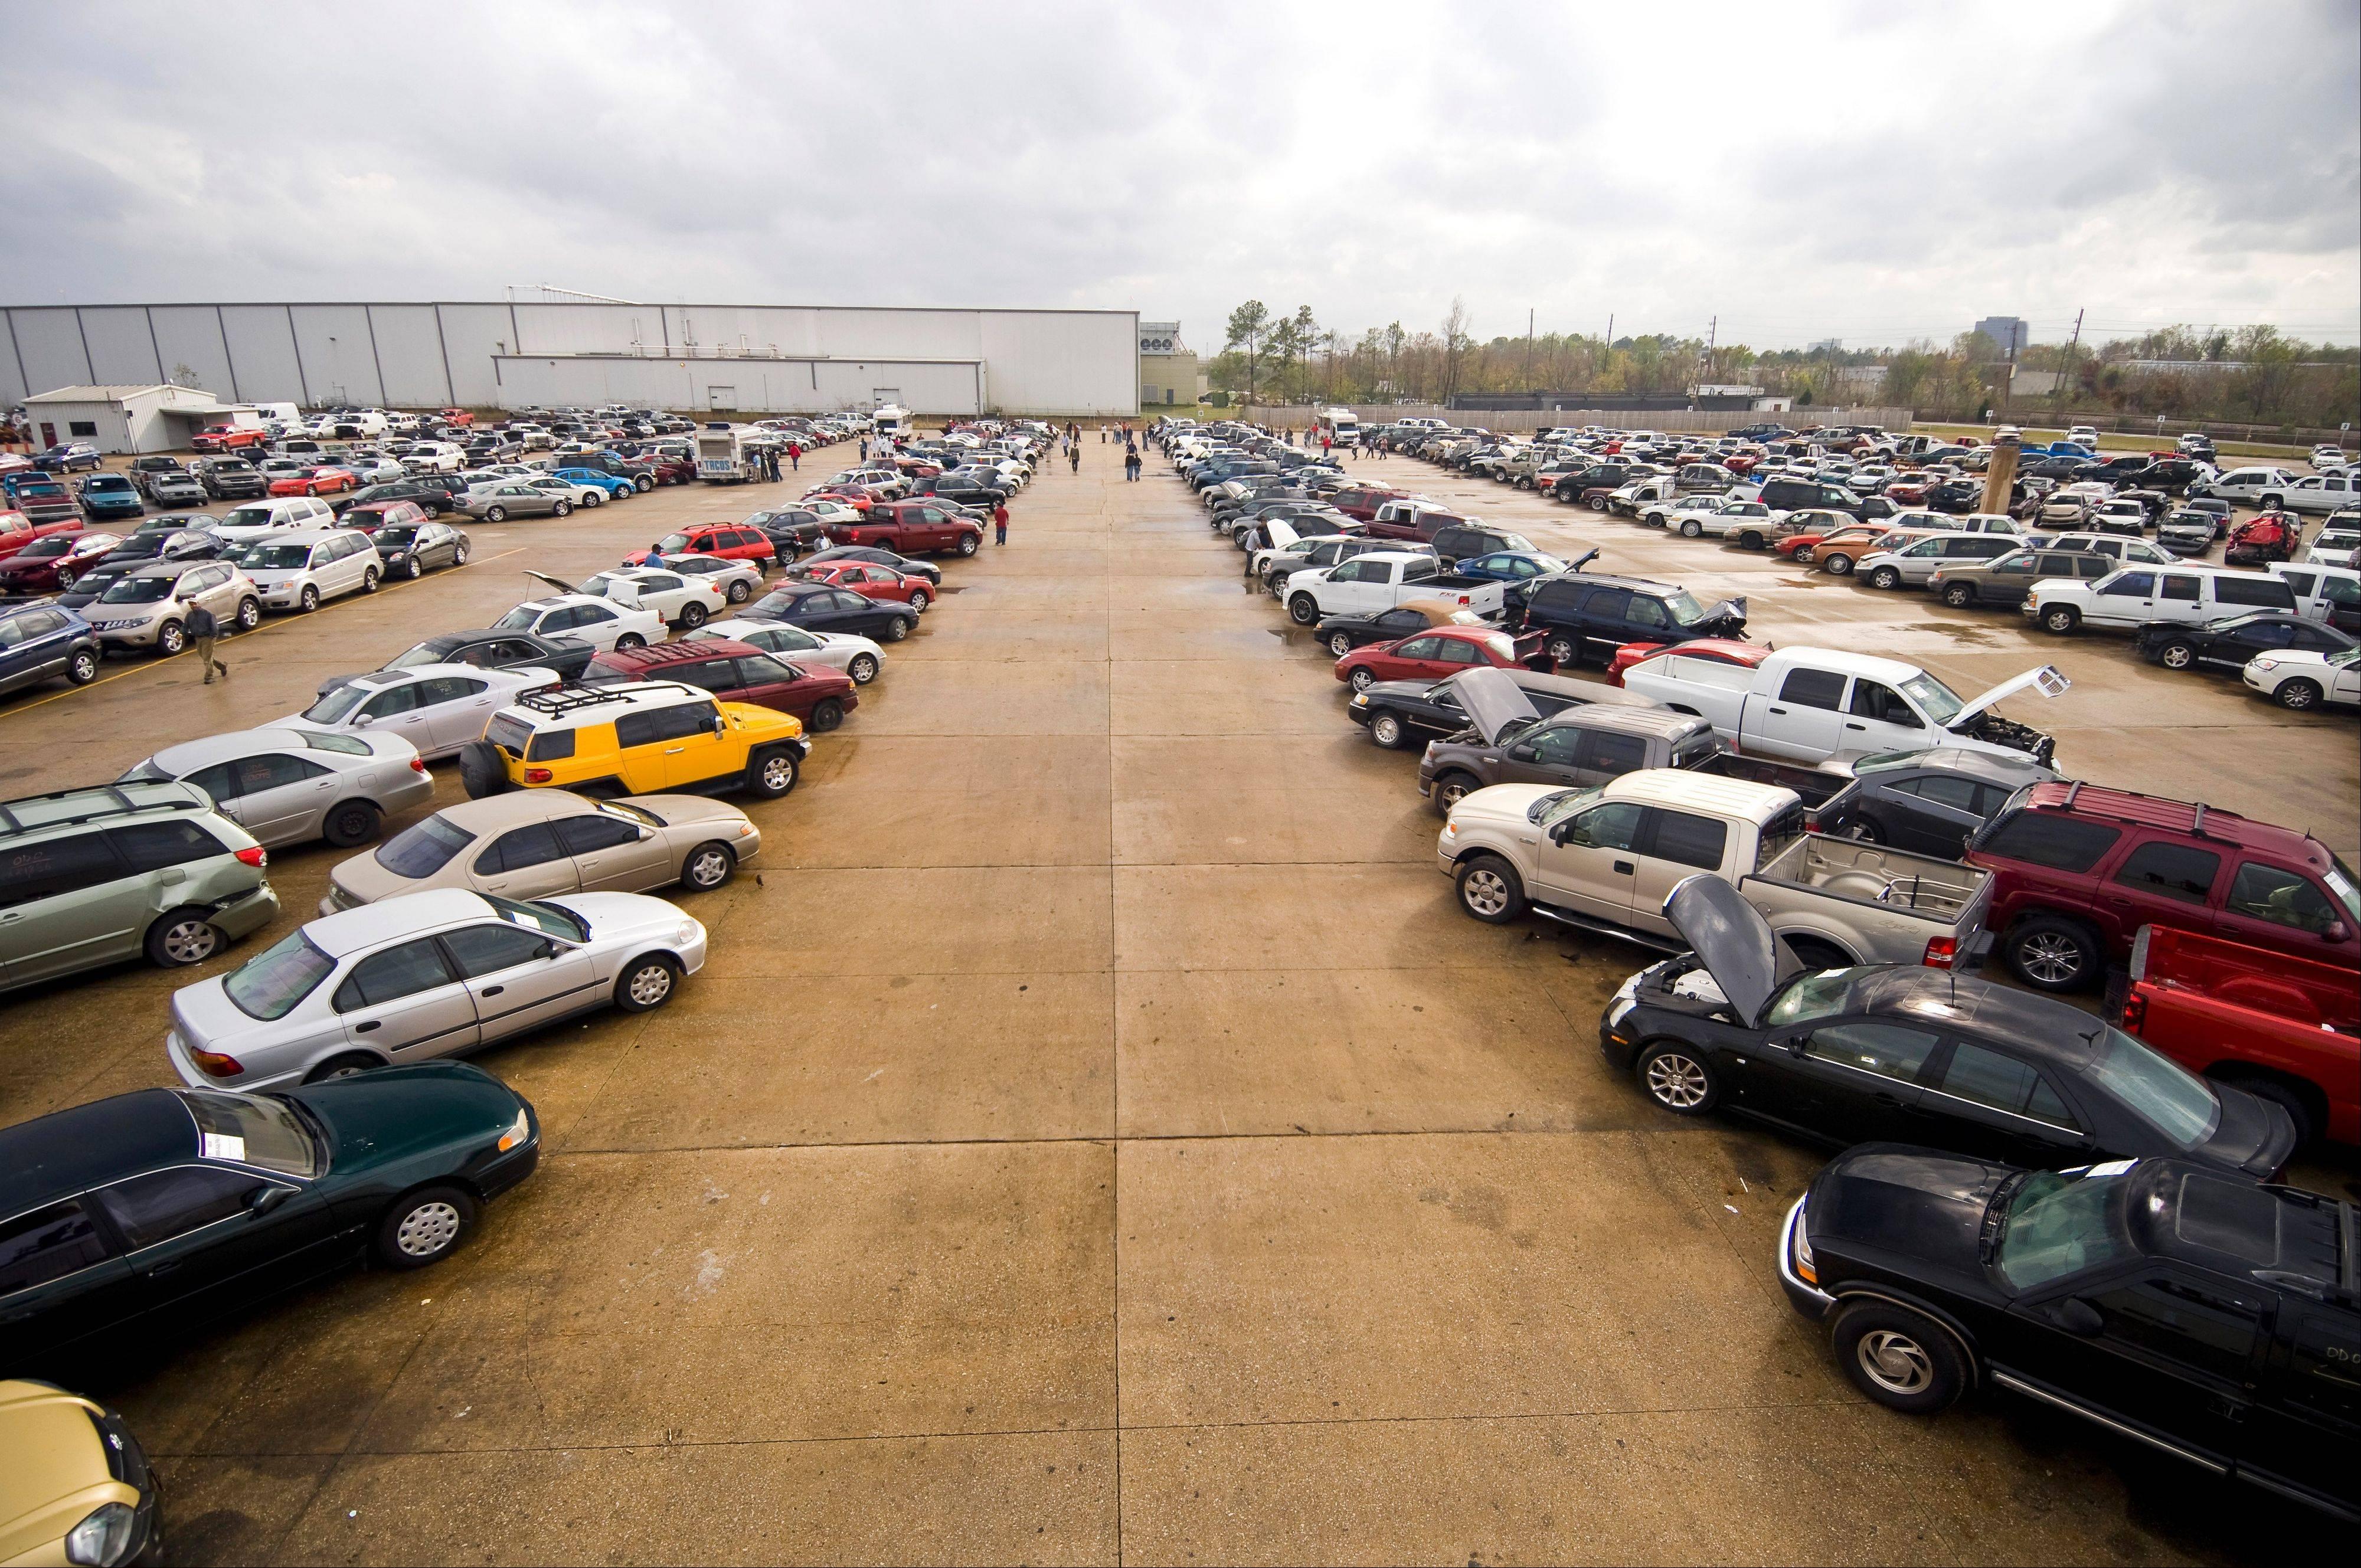 This is an Insurance Auto Auctions location in Houston. The company hopes to open a similar location in East Dundee, but a Barrington Hills-based group across the border characterizes the company as a junkyard and is fearful fluids leaking from its vehicles will contaminate local groundwater.